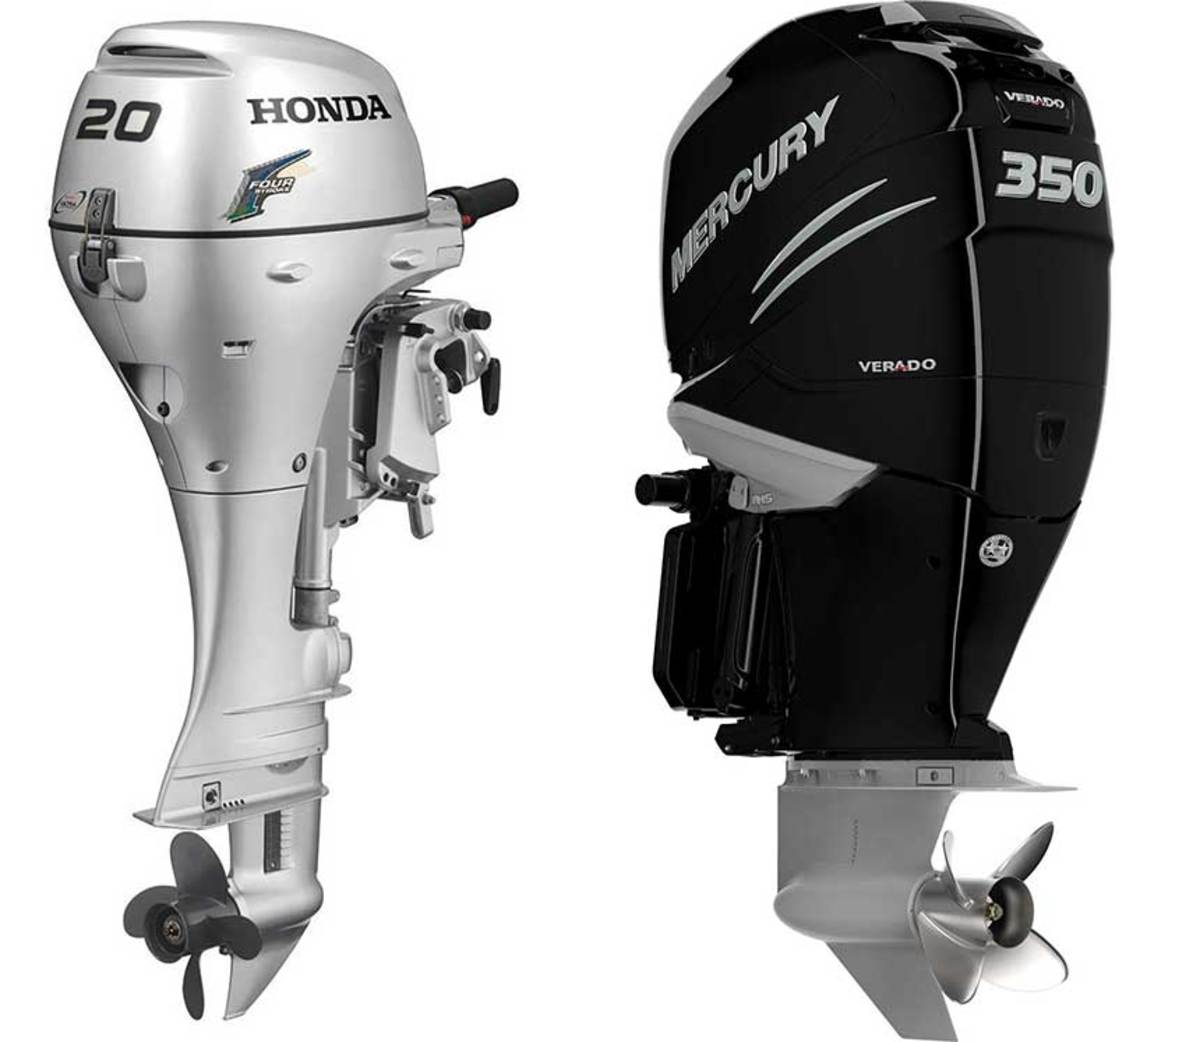 The BF20 was part of Honda's original 4-stroke outboard line; the Mercury 350 Verado was the first in a supercharged series.